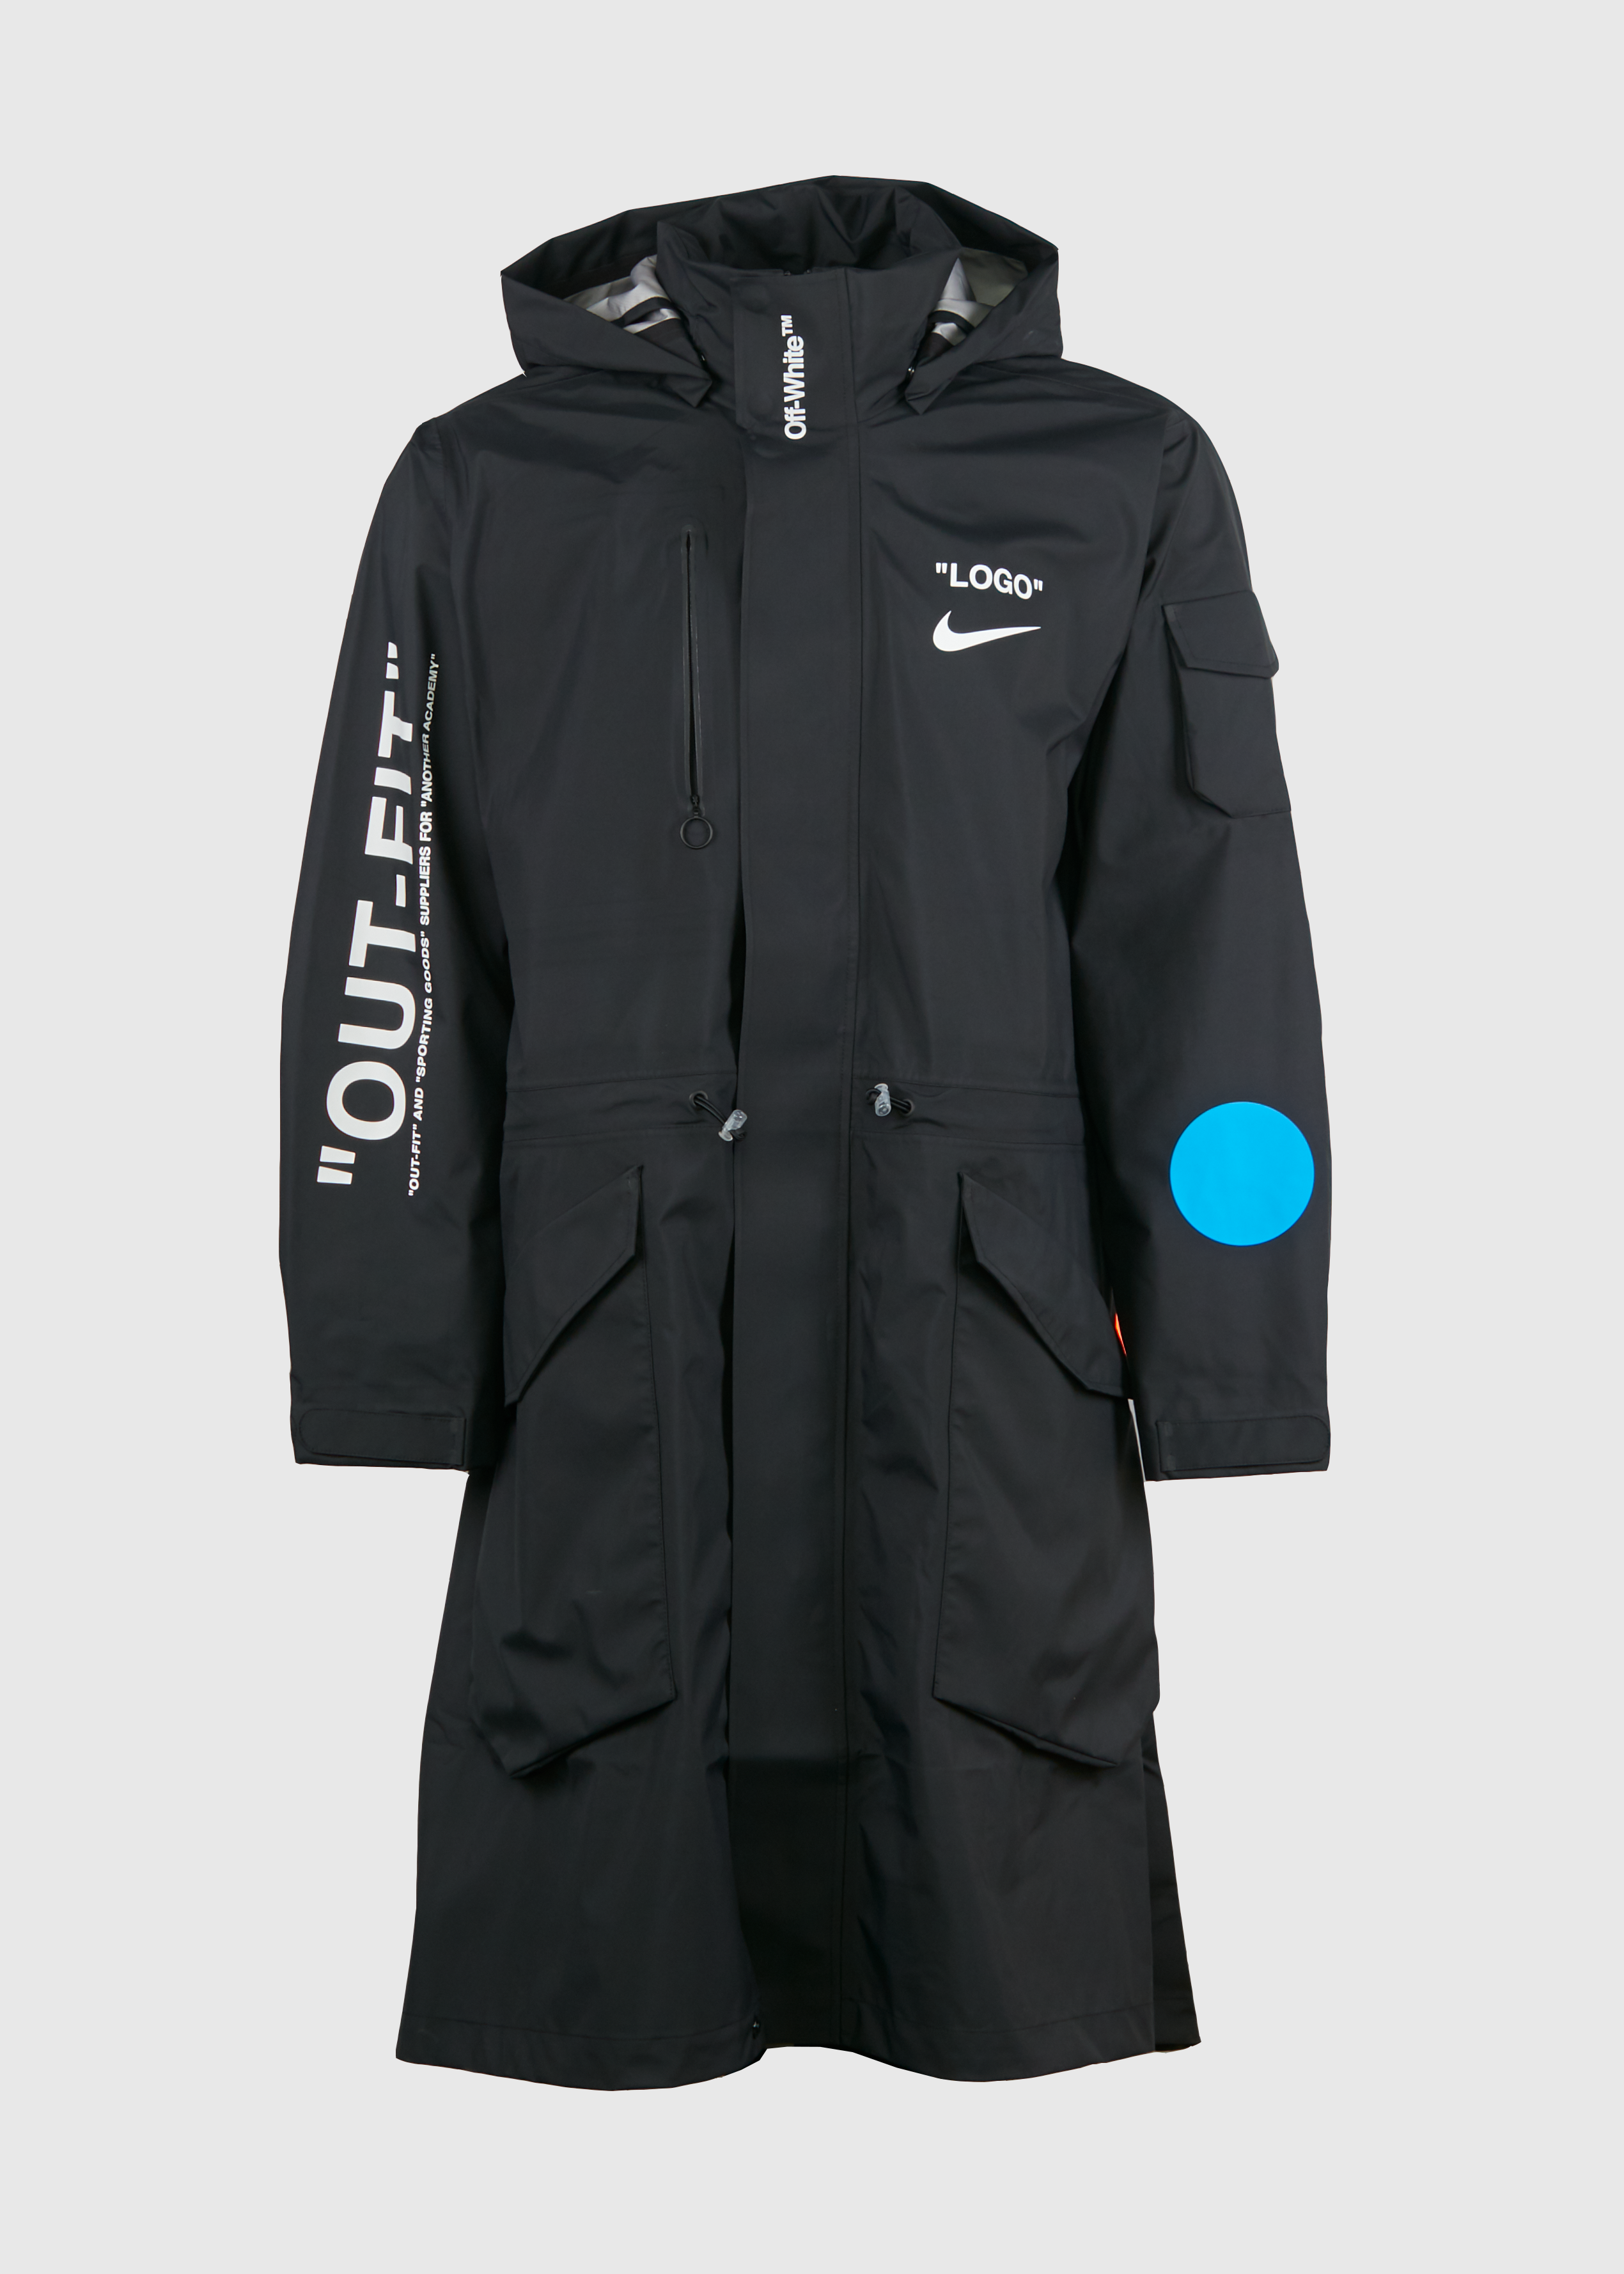 3d4835053ba6 Nike × Off-White. Nike Lab Off-White (SMALL size) Football Mercurial NRG X  Black Parka Jacket Coat